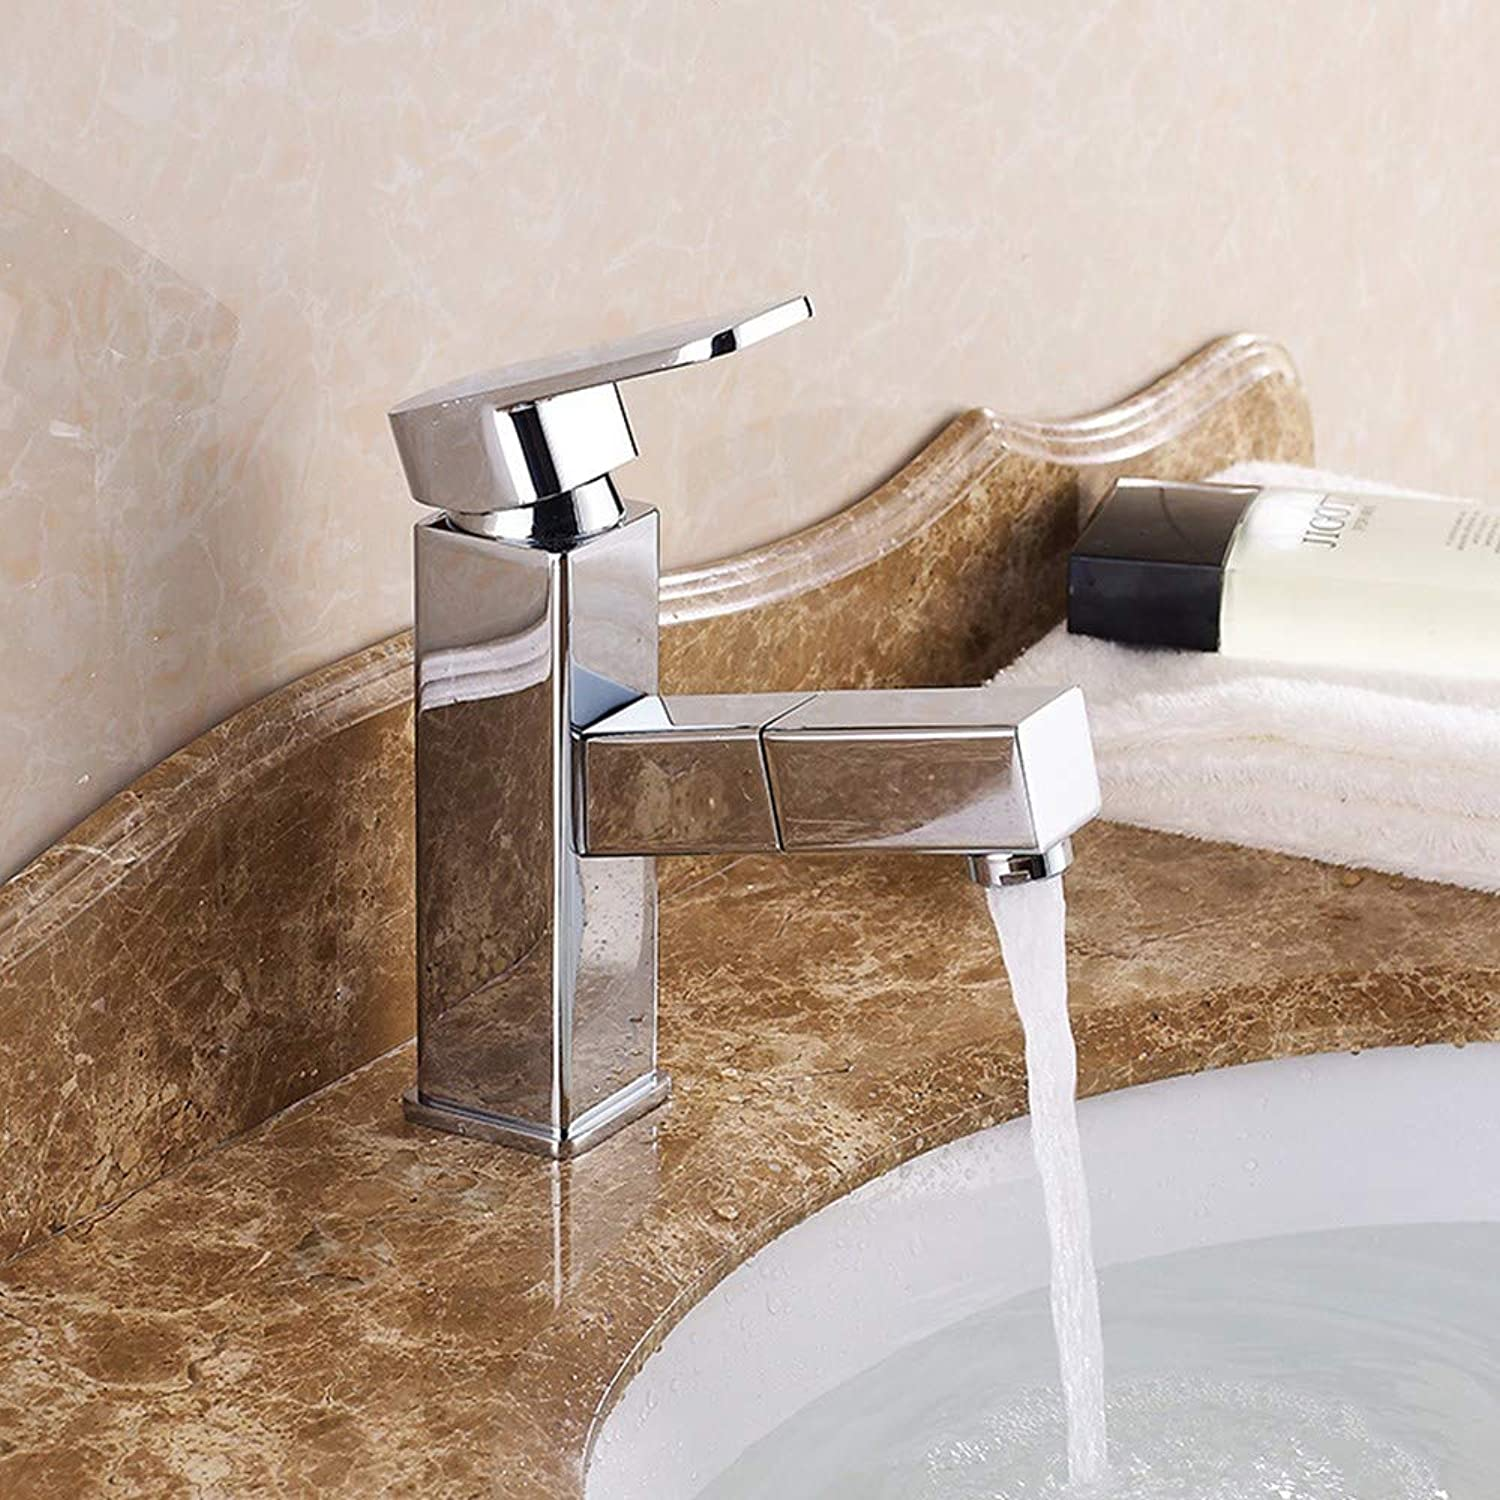 Cucsaist Faucet basin pull-out faucet above counter basin washbasin bathroom cabinet shampoo hot and cold water faucet